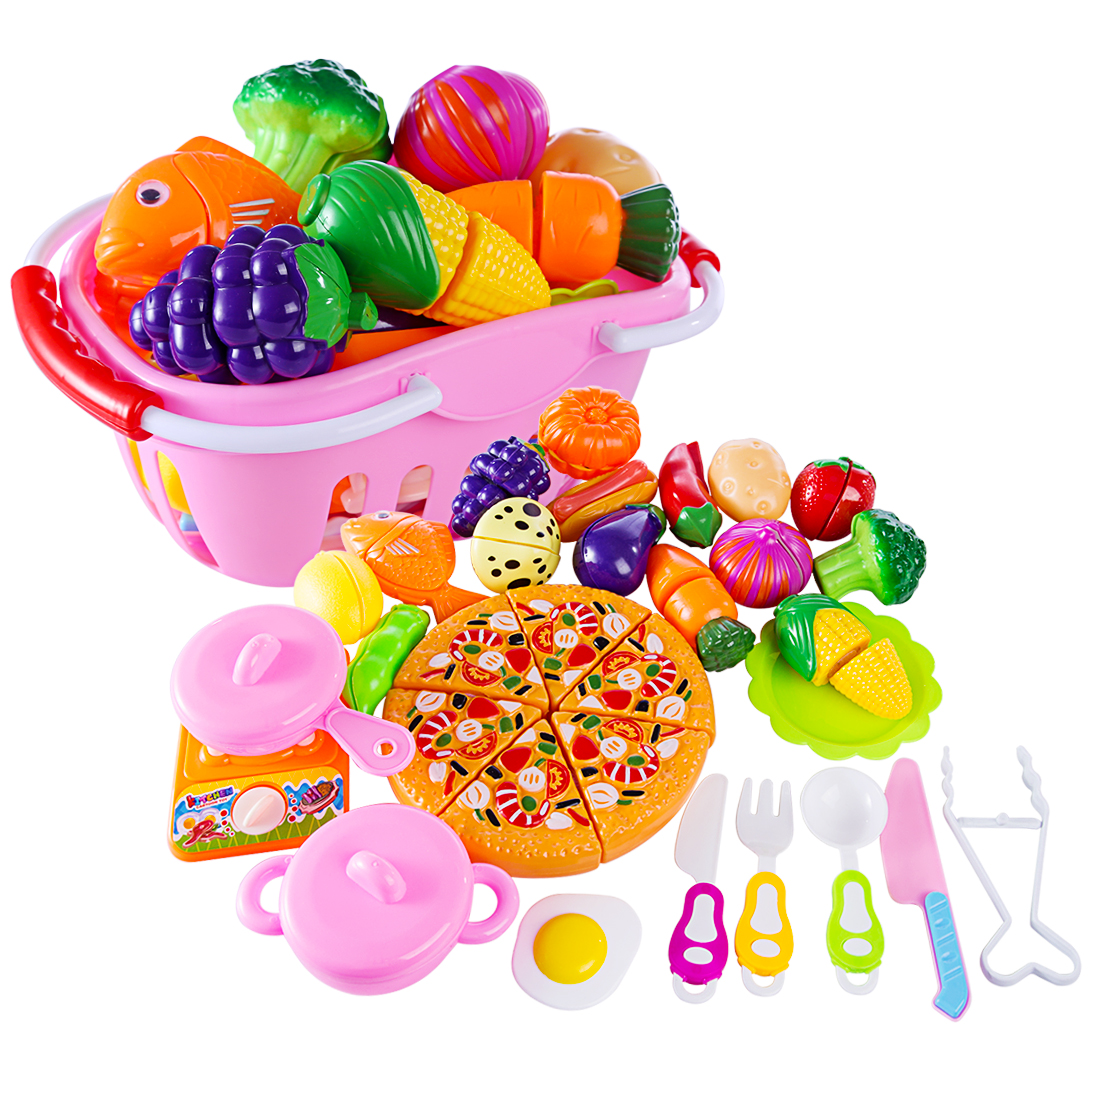 Surwish 32Pcs Funny Children Pretend & Play Toy Emulational Vegetables Fruits Cutting Kitchenware Set for KidsSurwish 32Pcs Funny Children Pretend & Play Toy Emulational Vegetables Fruits Cutting Kitchenware Set for Kids